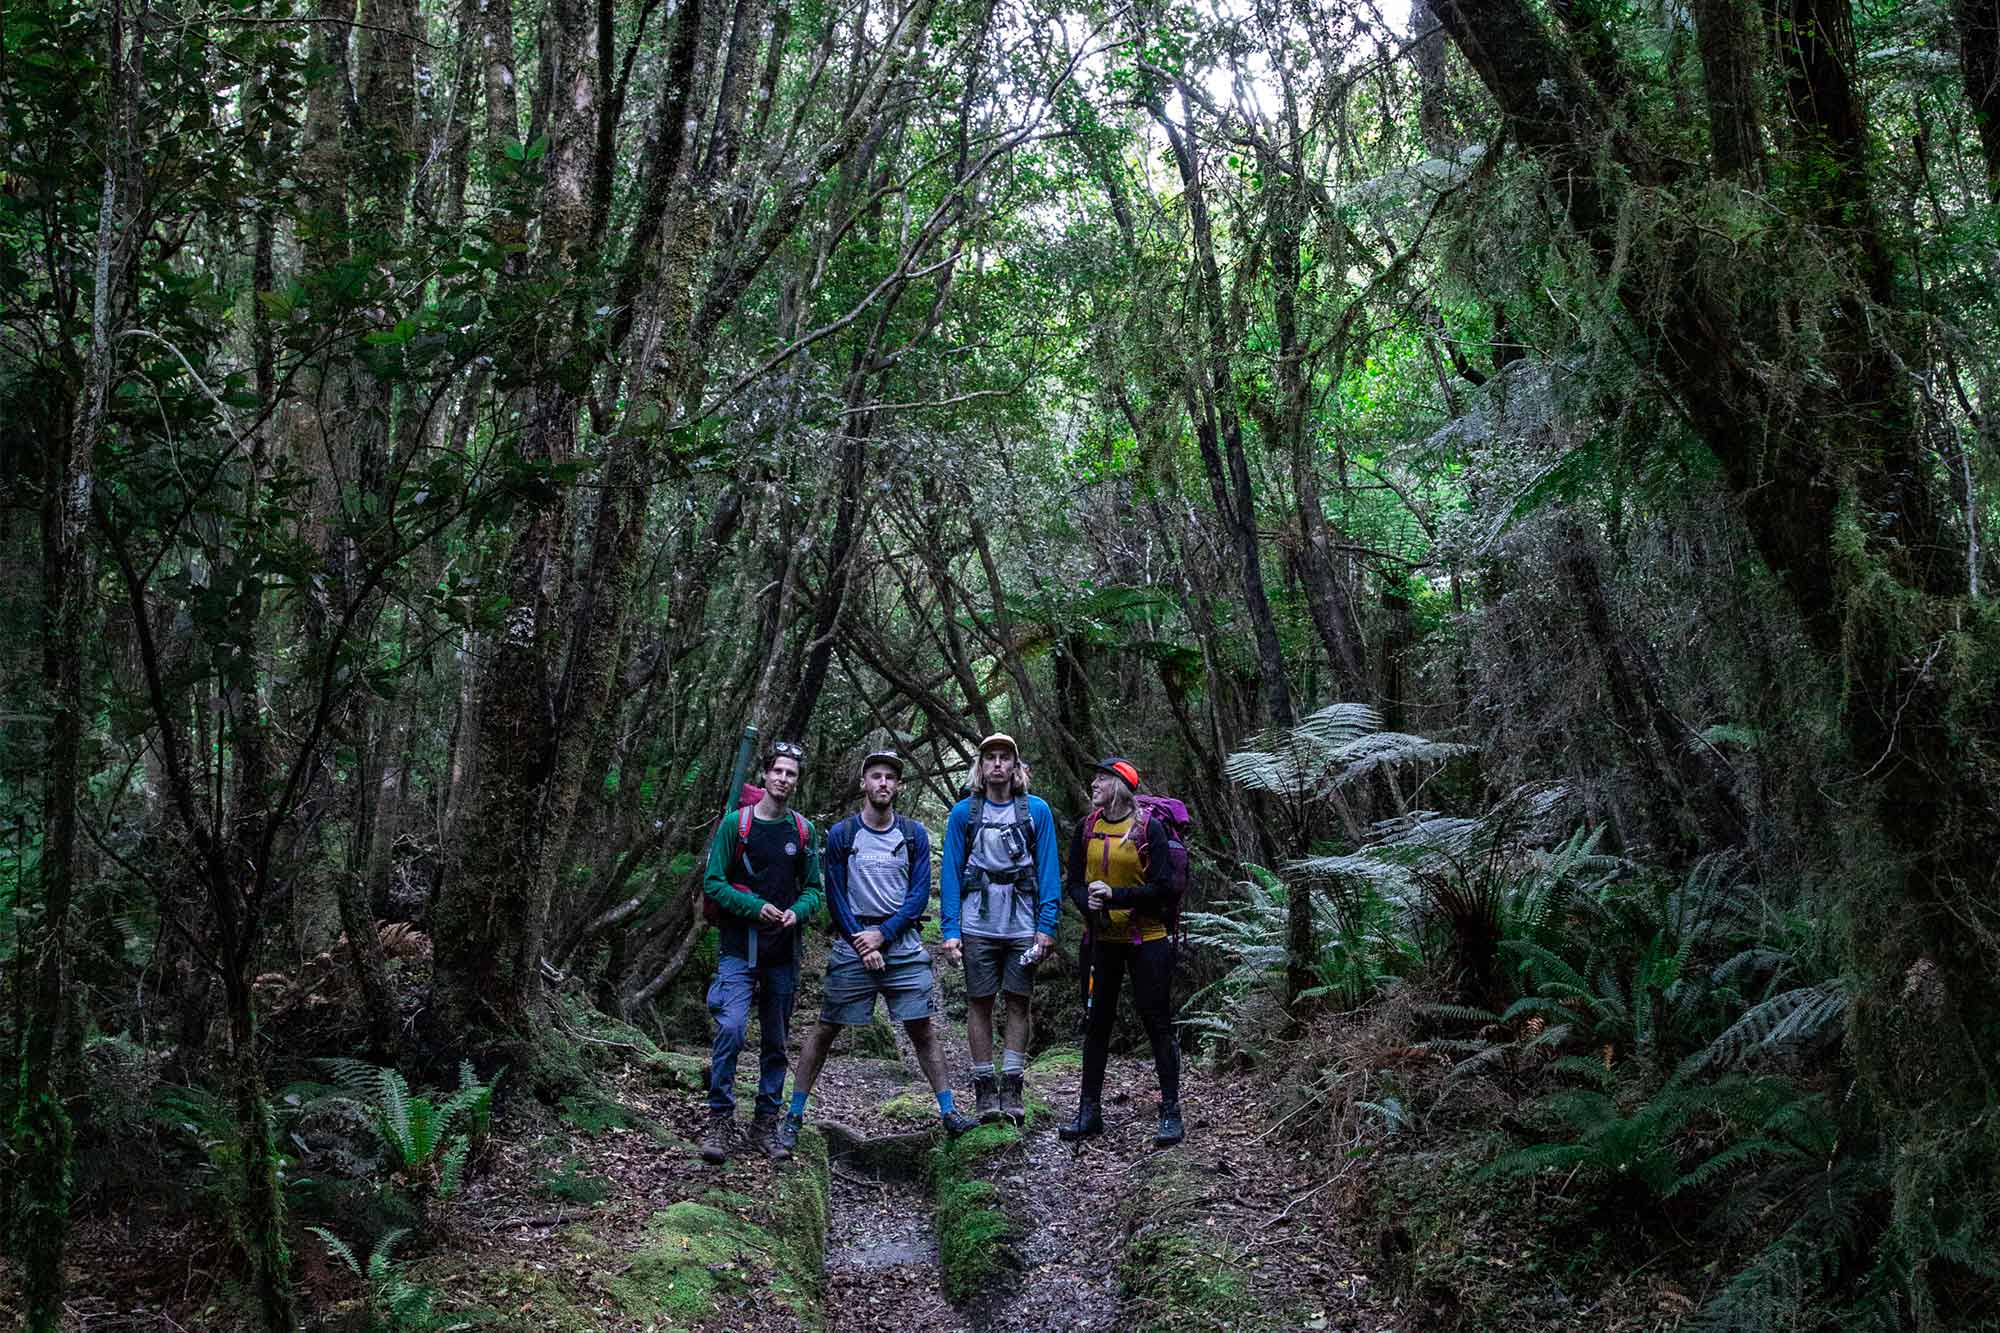 Hikers pose for a photo on the Copland Track in New Zealand